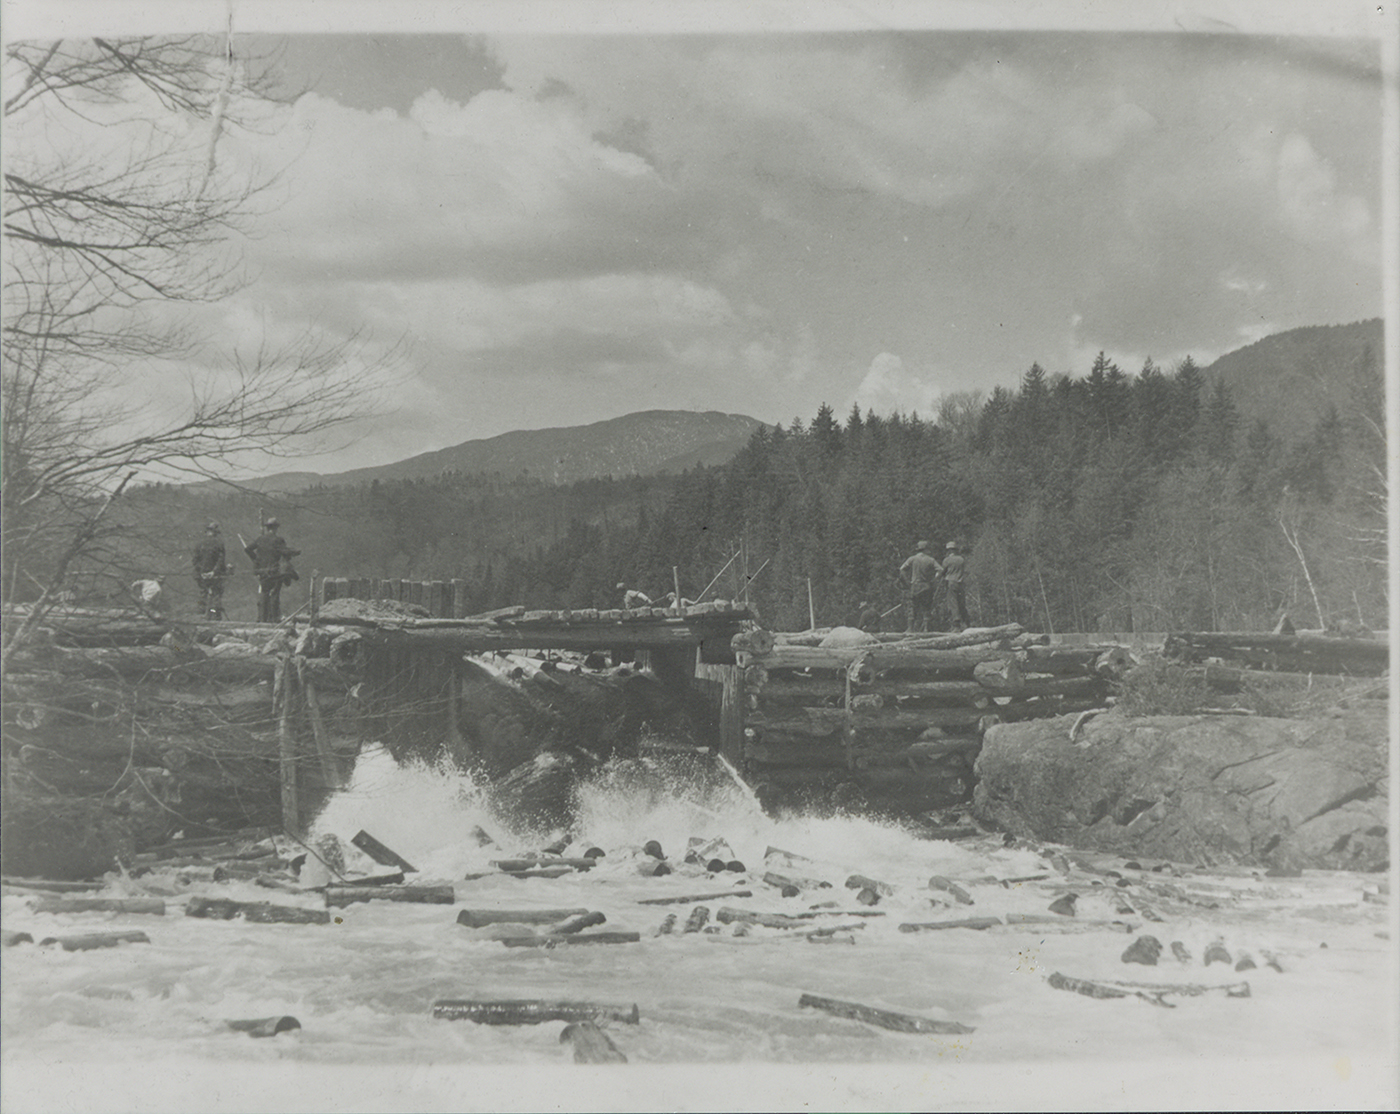 Loggers move logs through a dam gate on Henderson Lake, NY in 1935.